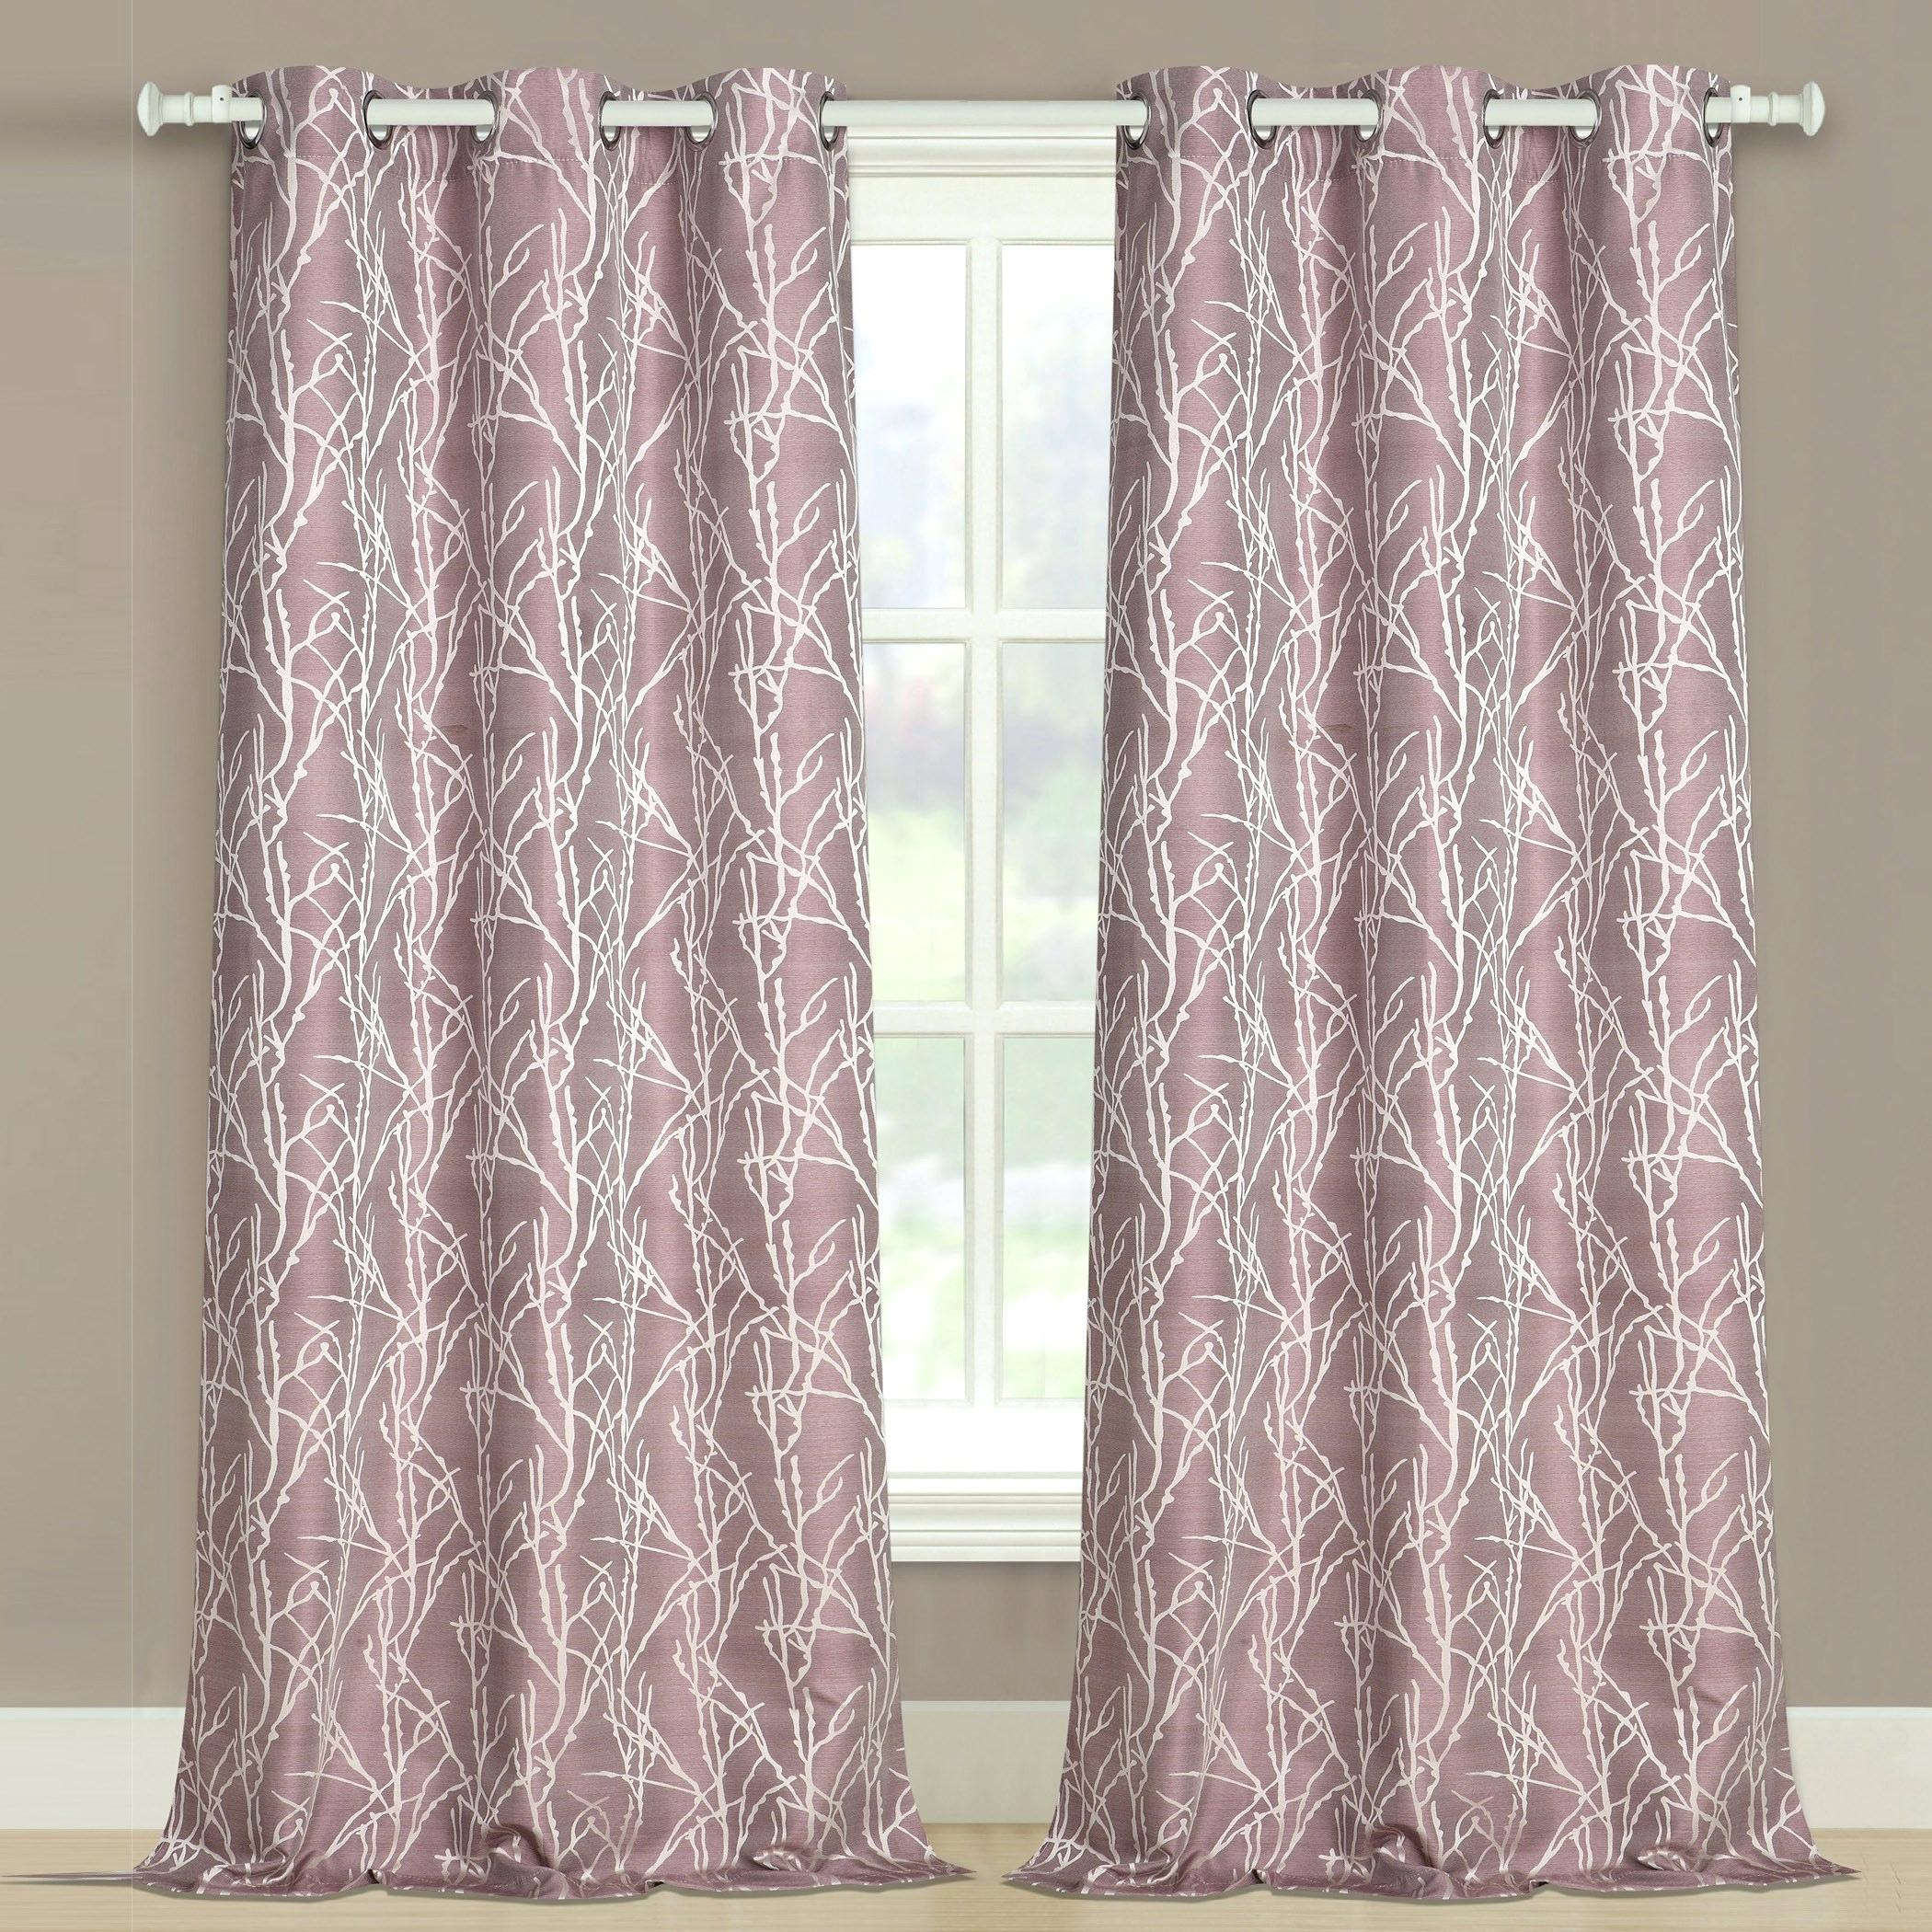 Curtain Panel Pairs Thermal – Fxlegends (View 12 of 30)